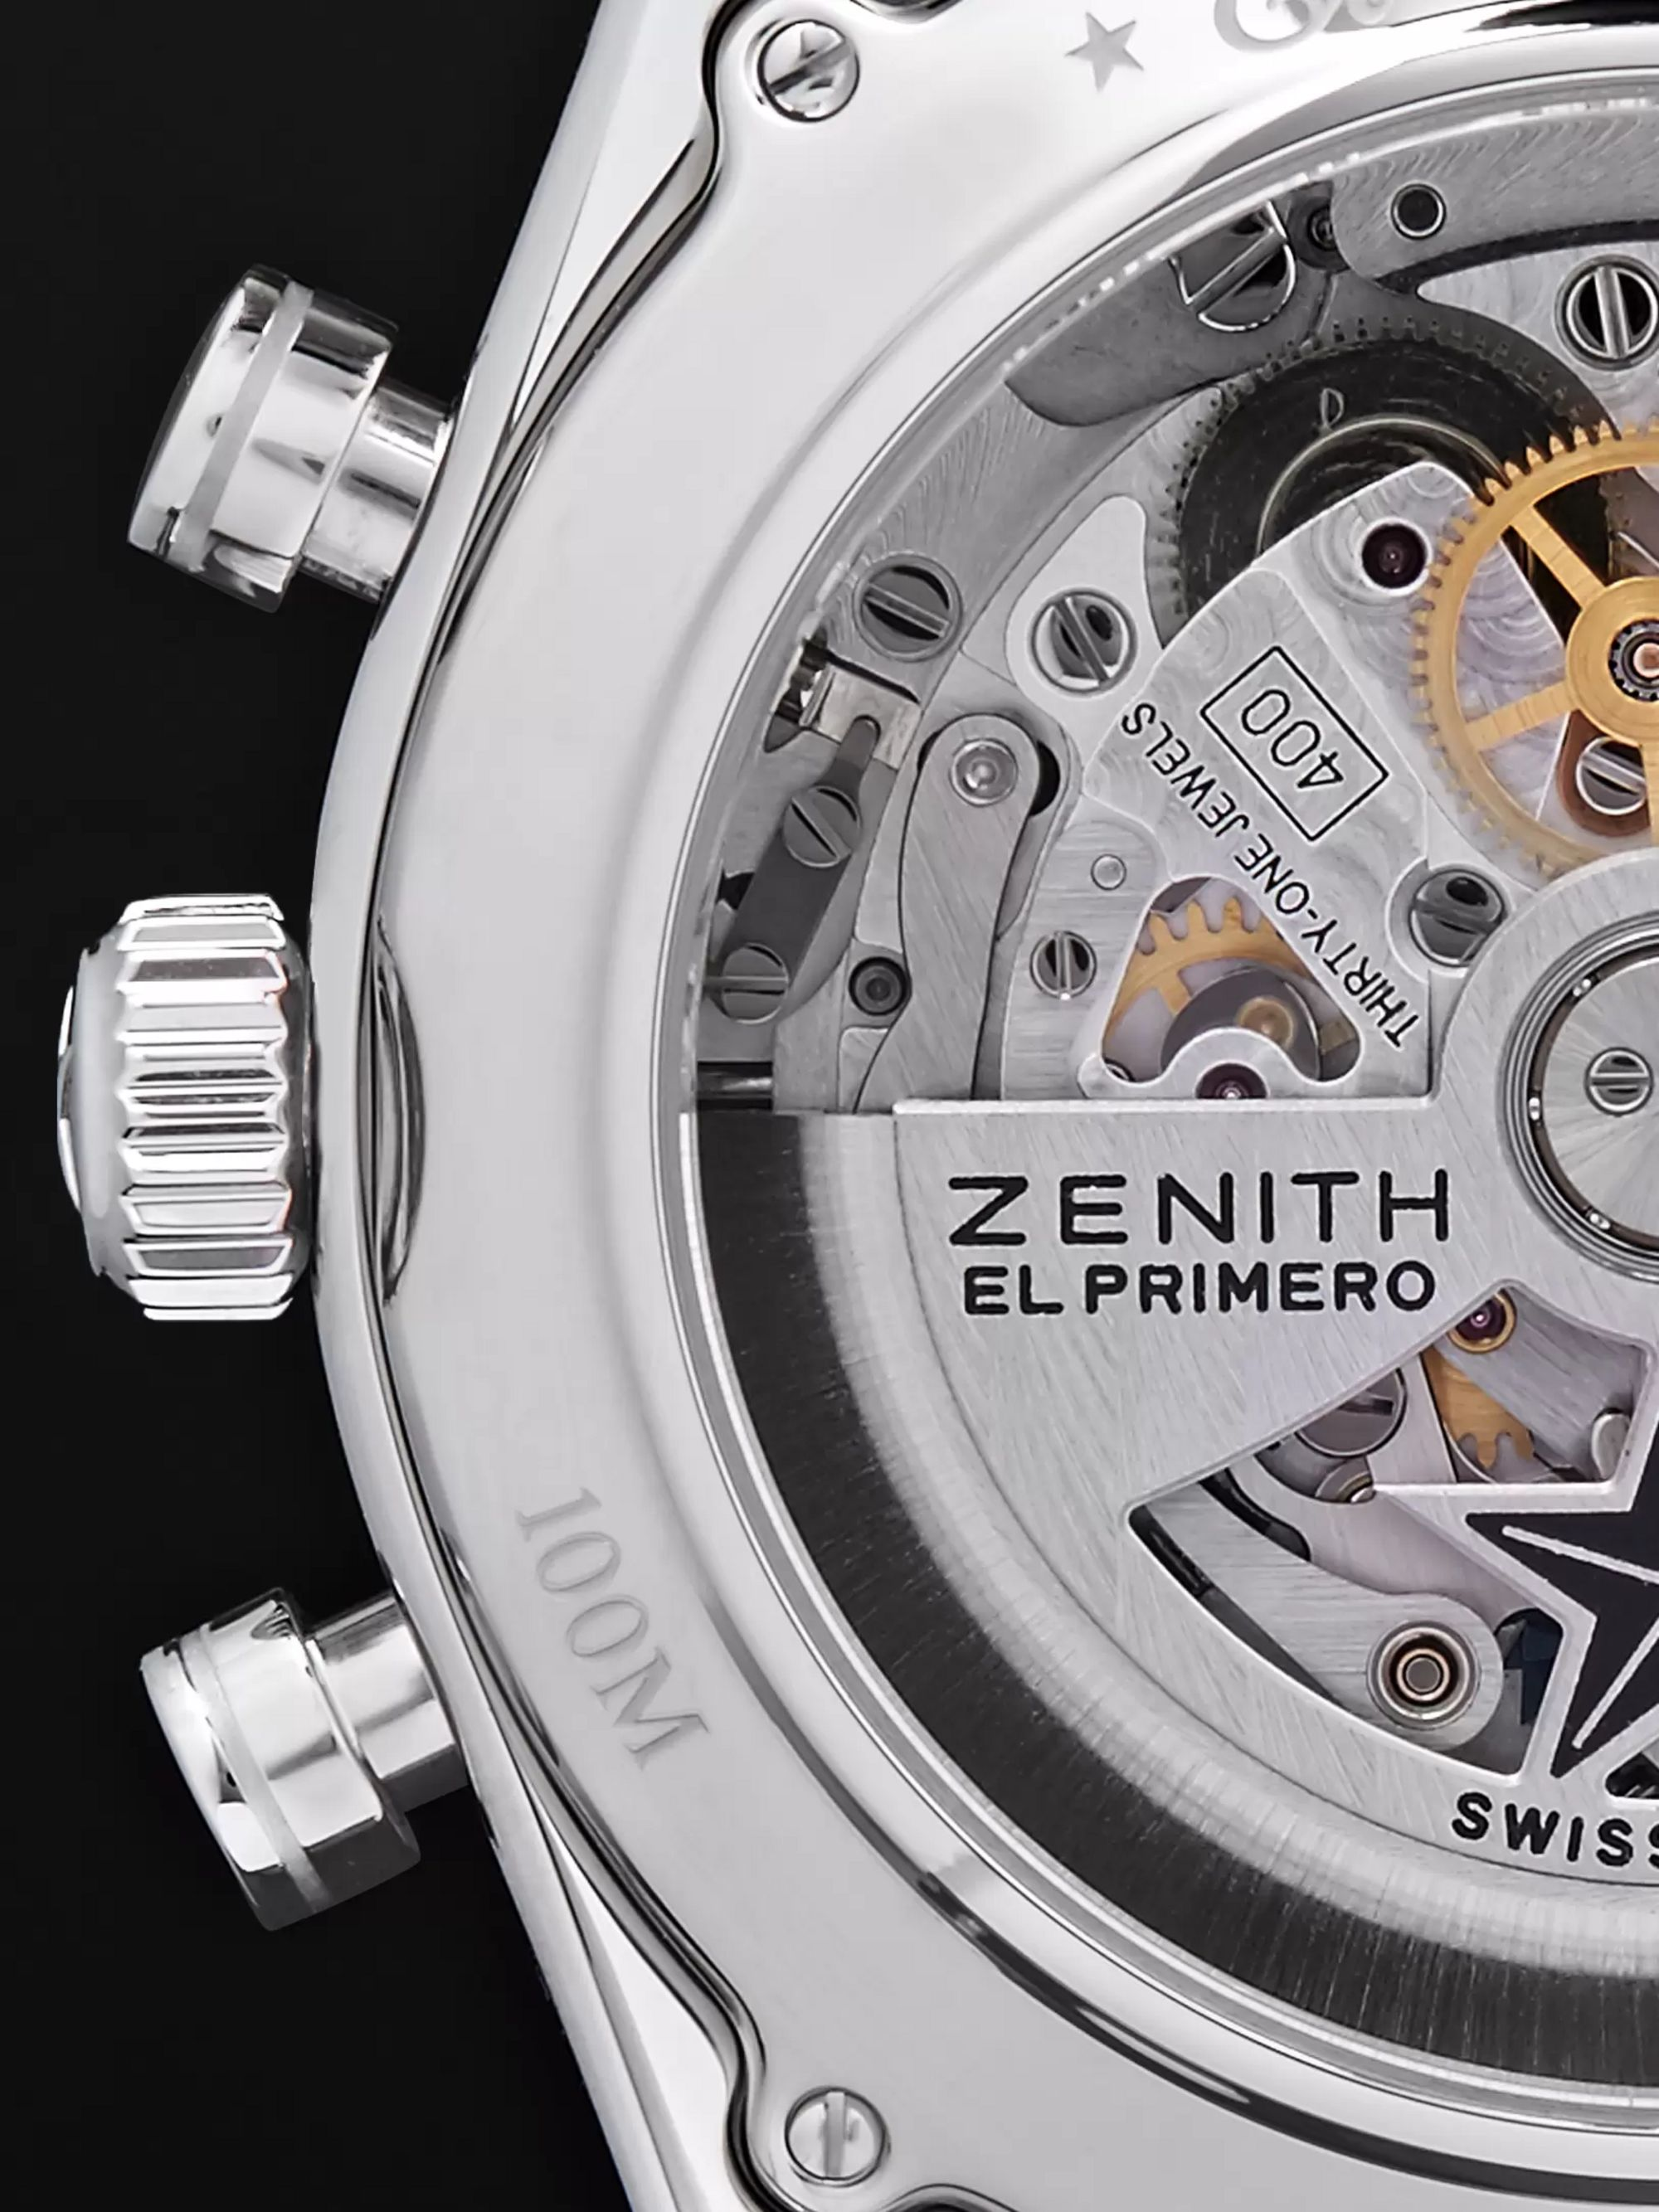 Zenith El Primero 42mm Stainless Steel and Alligator Watch, Ref. No. 03.2040.400/69.C494